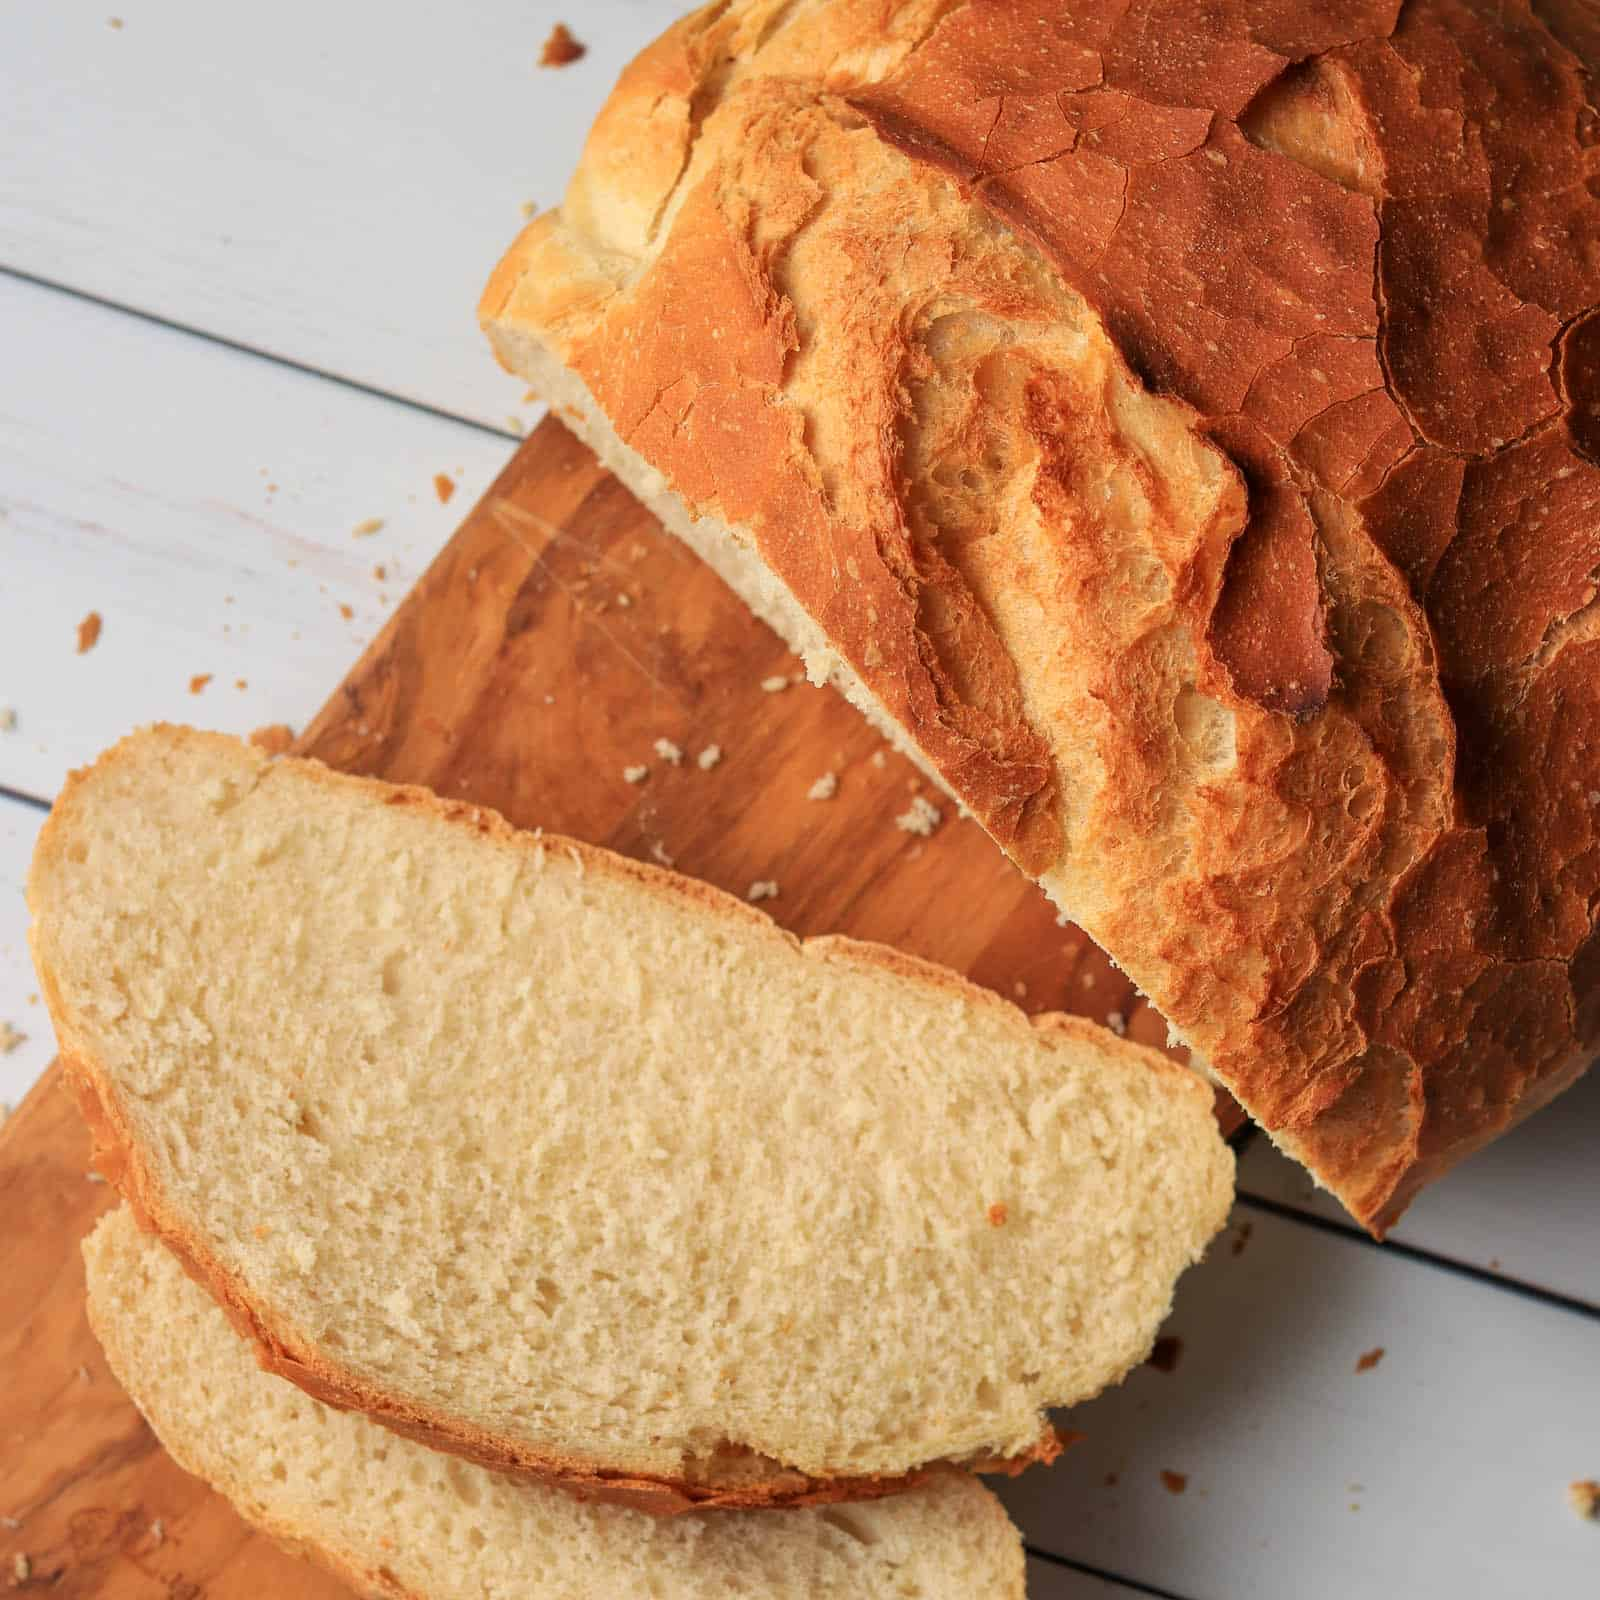 Sliced Thermomix bread from above